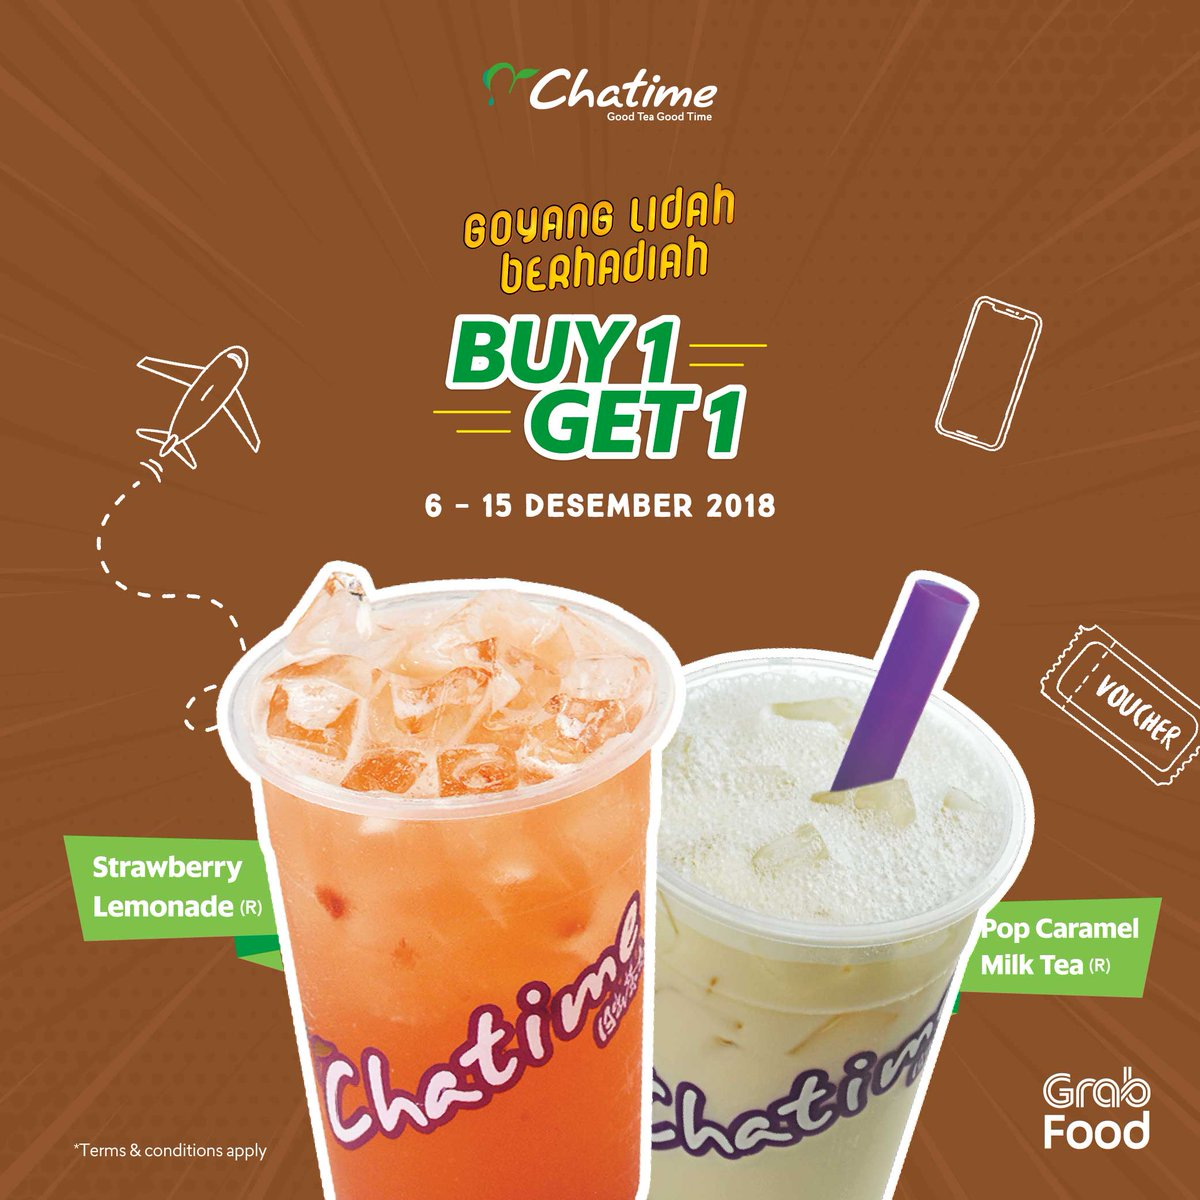 Chatime - Promo Buy 1 Get 1 Pakai GOFOOD (s.d 15 Des 2018)